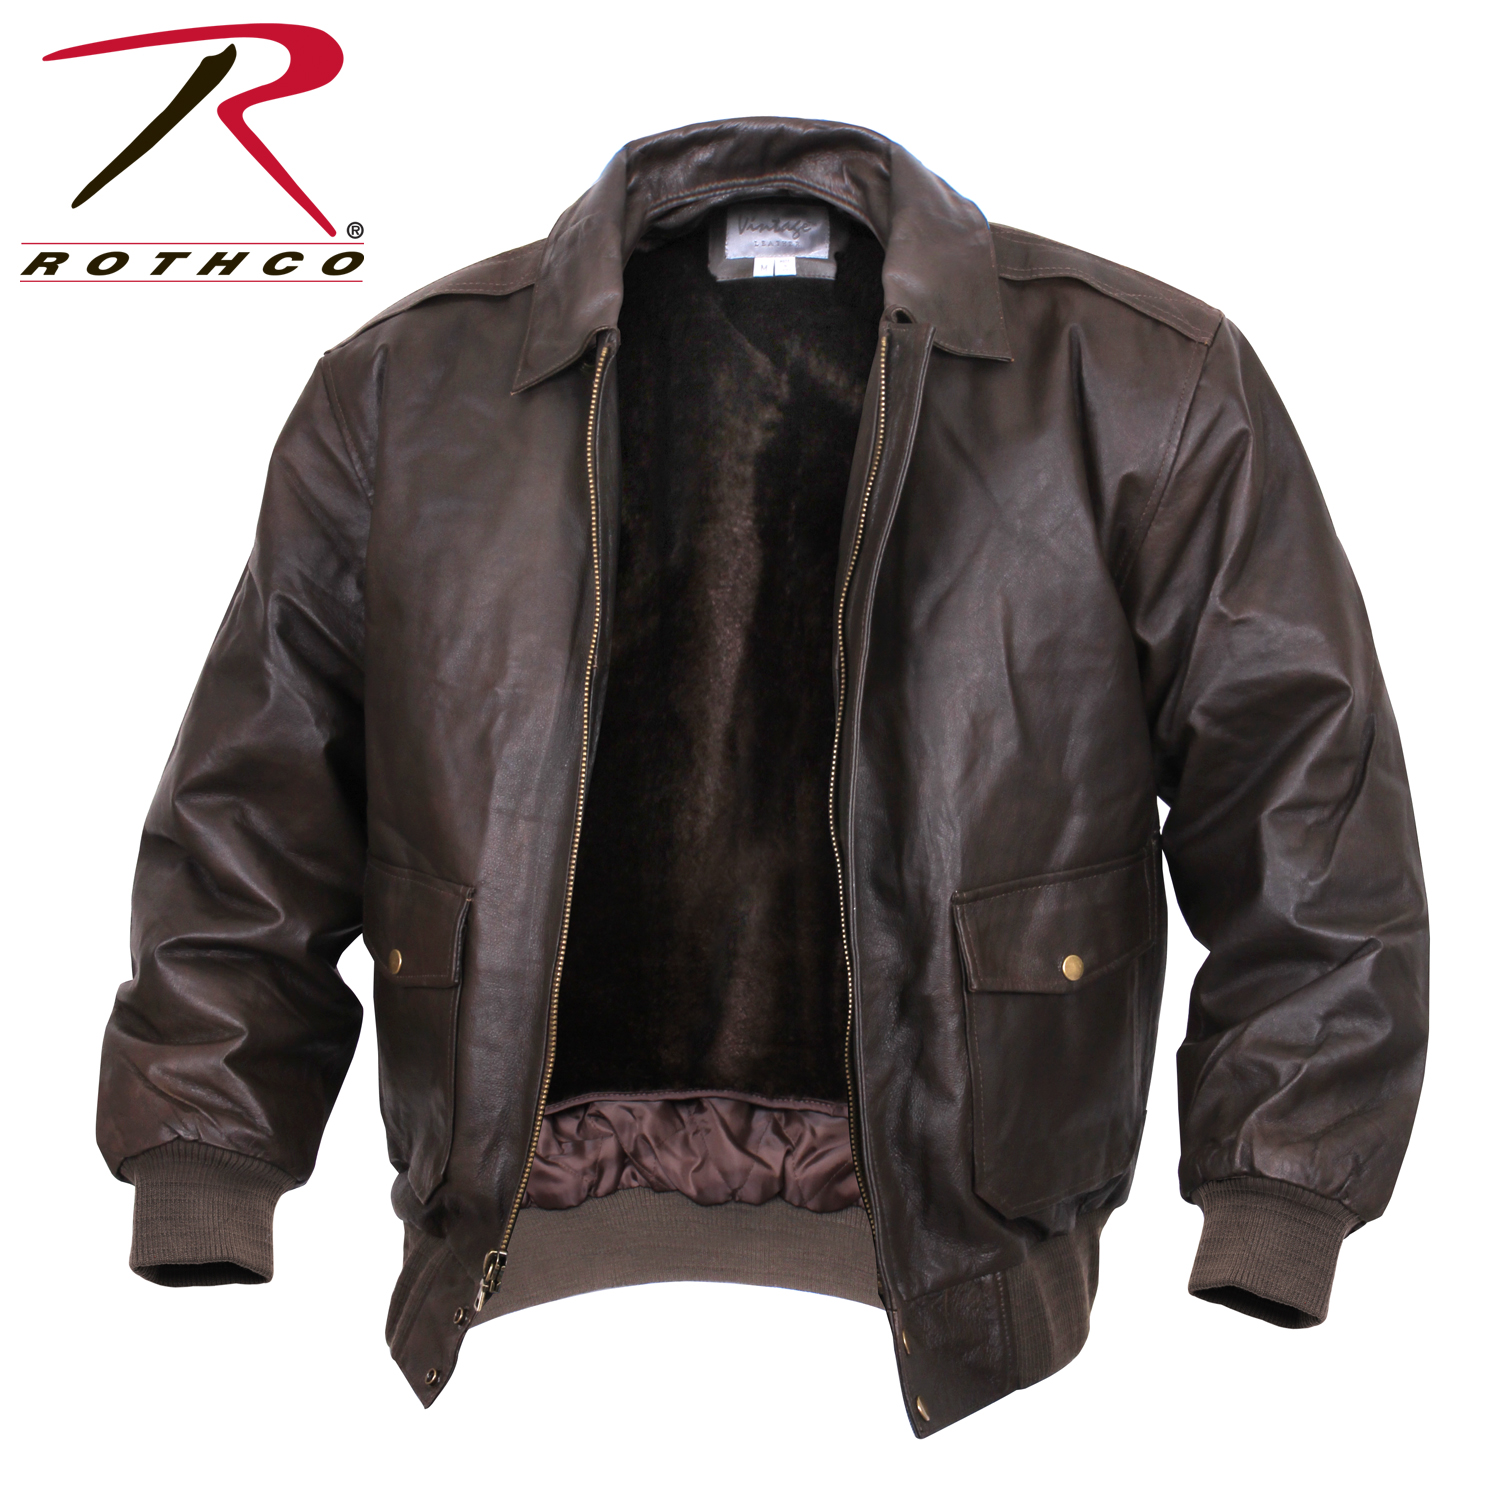 fdeb22ae5 Rothco Classic A-2 Leather Flight Jacket